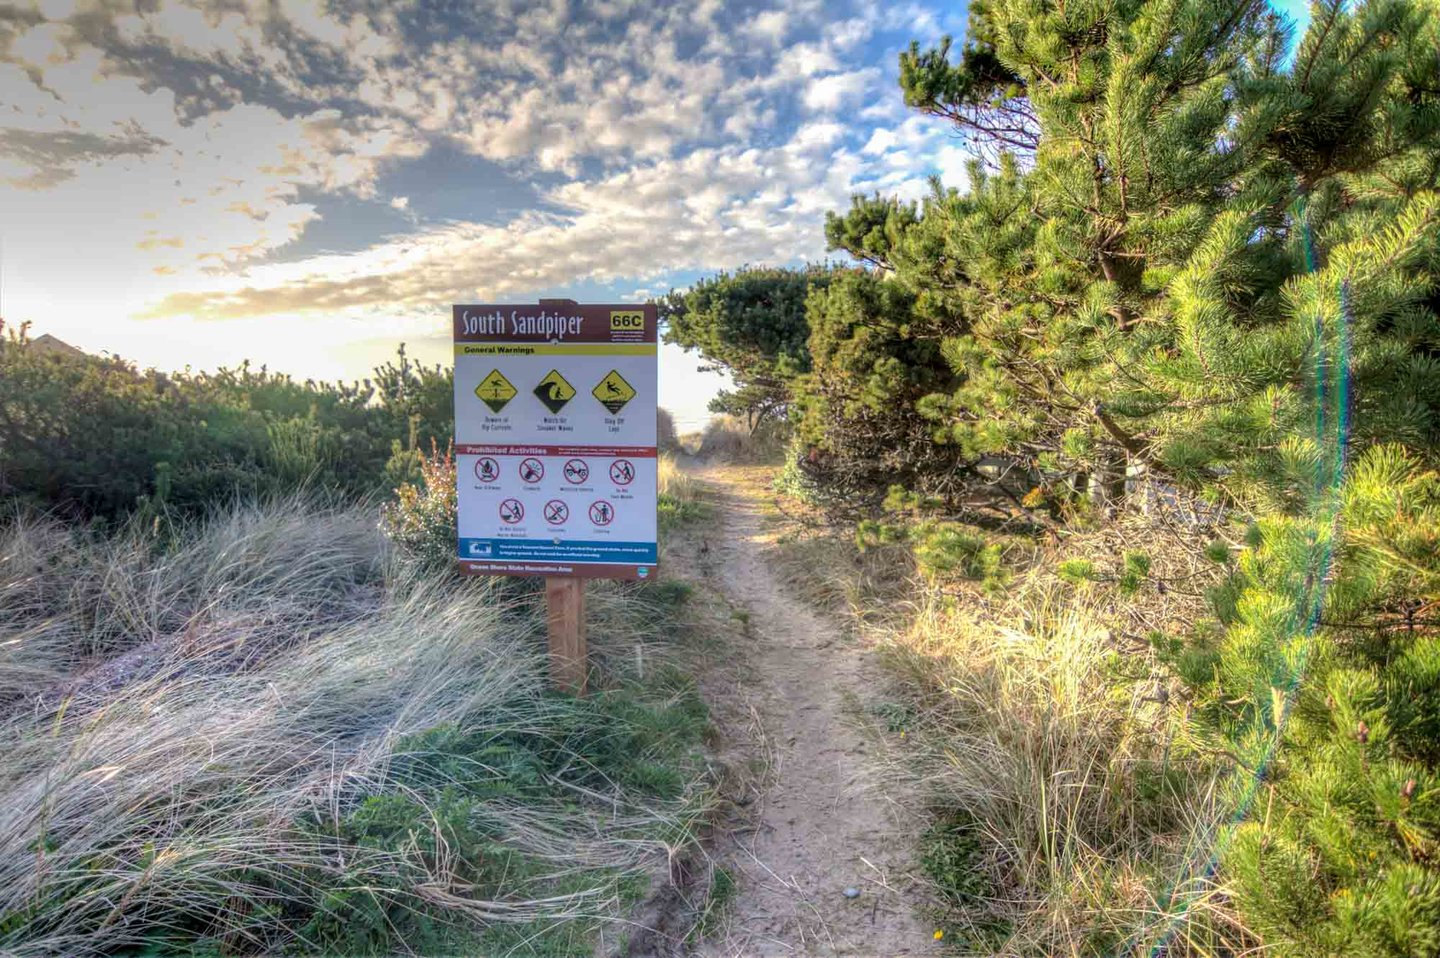 It is a short walk to the beach access.